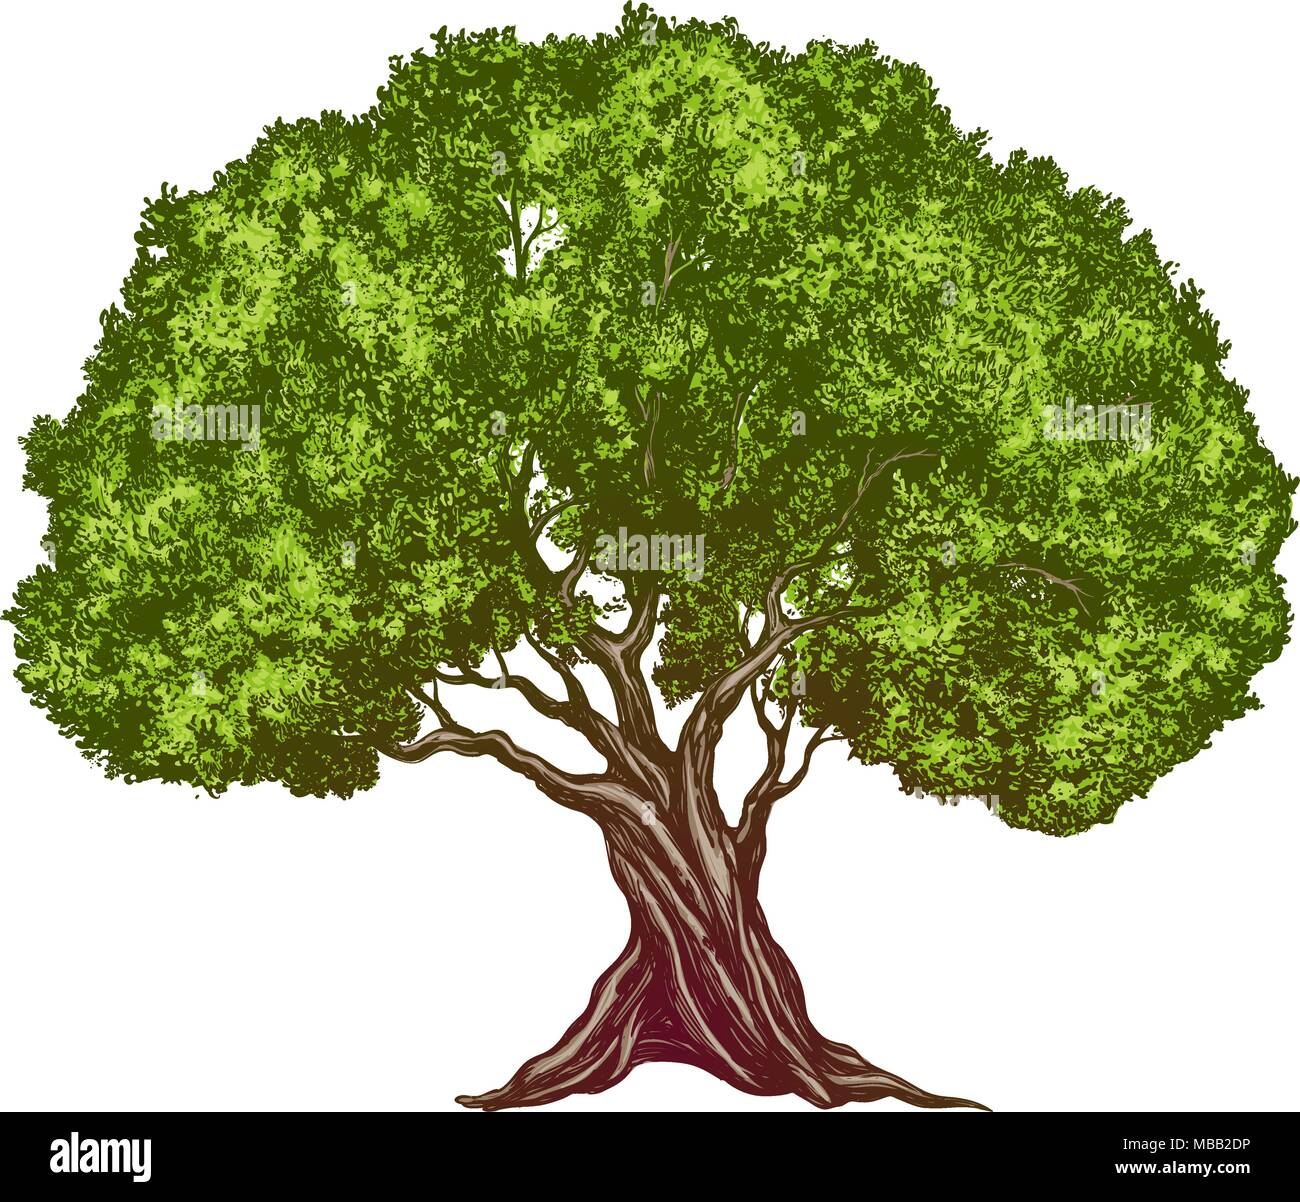 Olive tree hand drawn vector illustration realistic sketch for Albero ulivo vettoriale